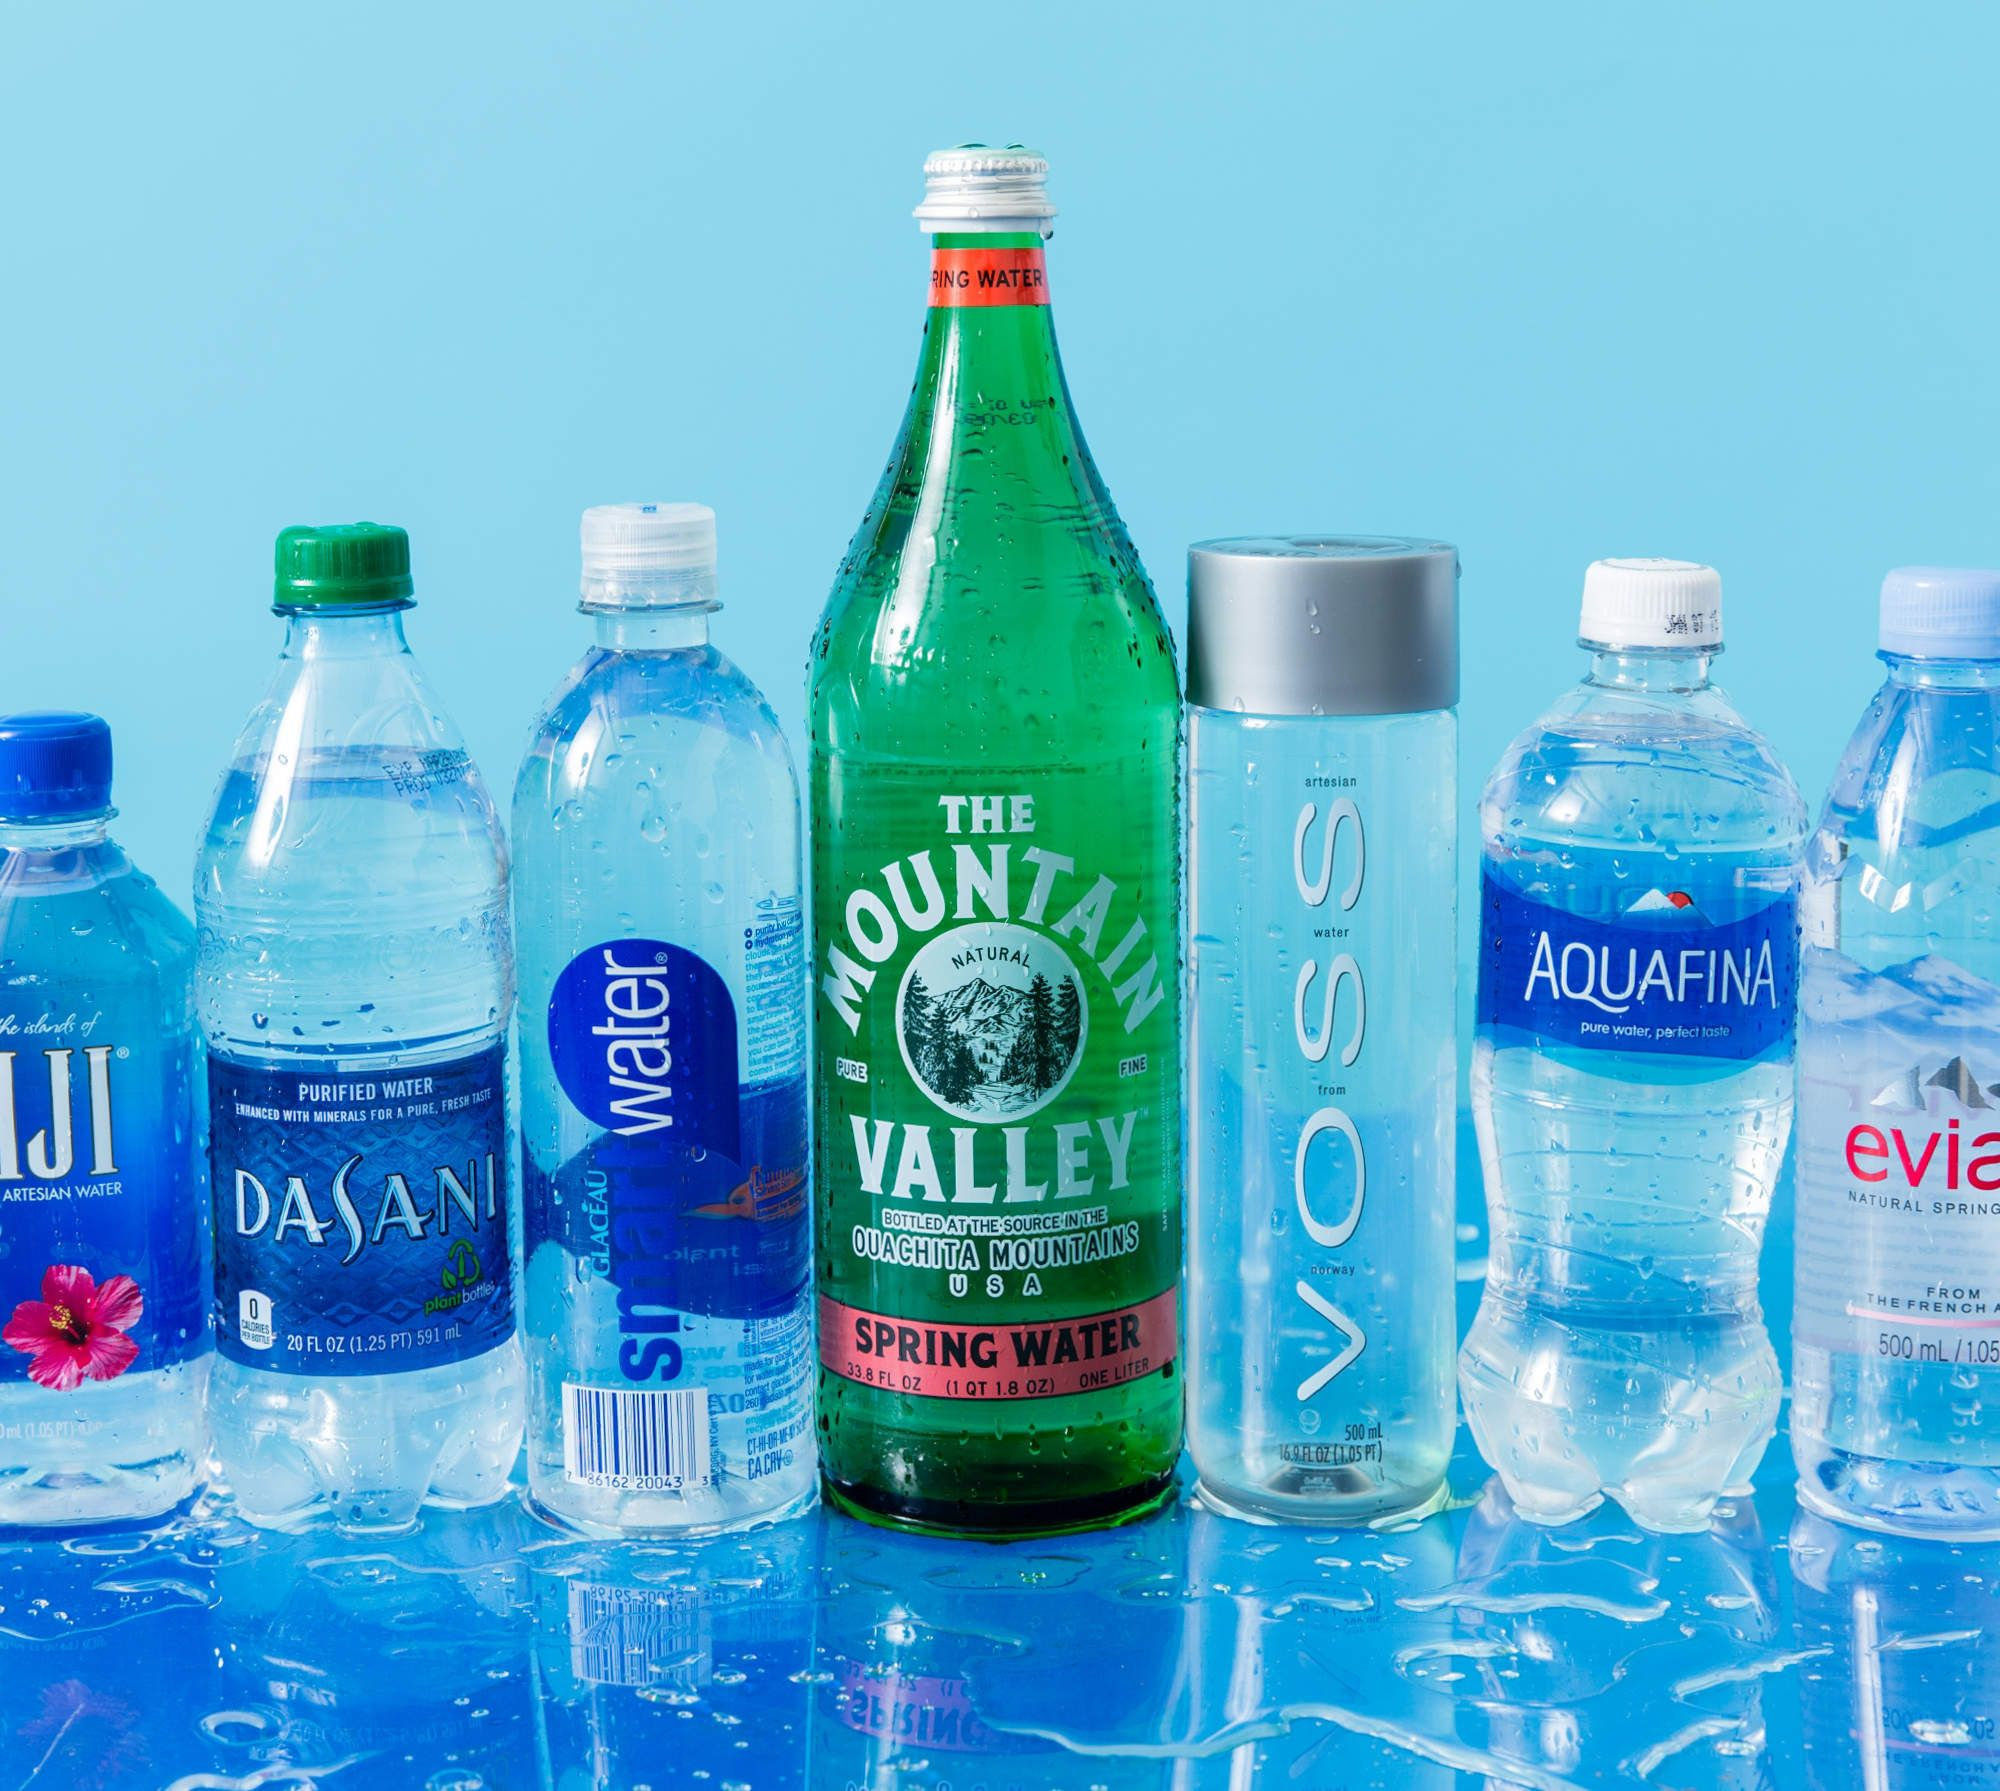 The Most Popular Bottled Waters Ranked Branded Water Bottle Water Branding Water Bottle